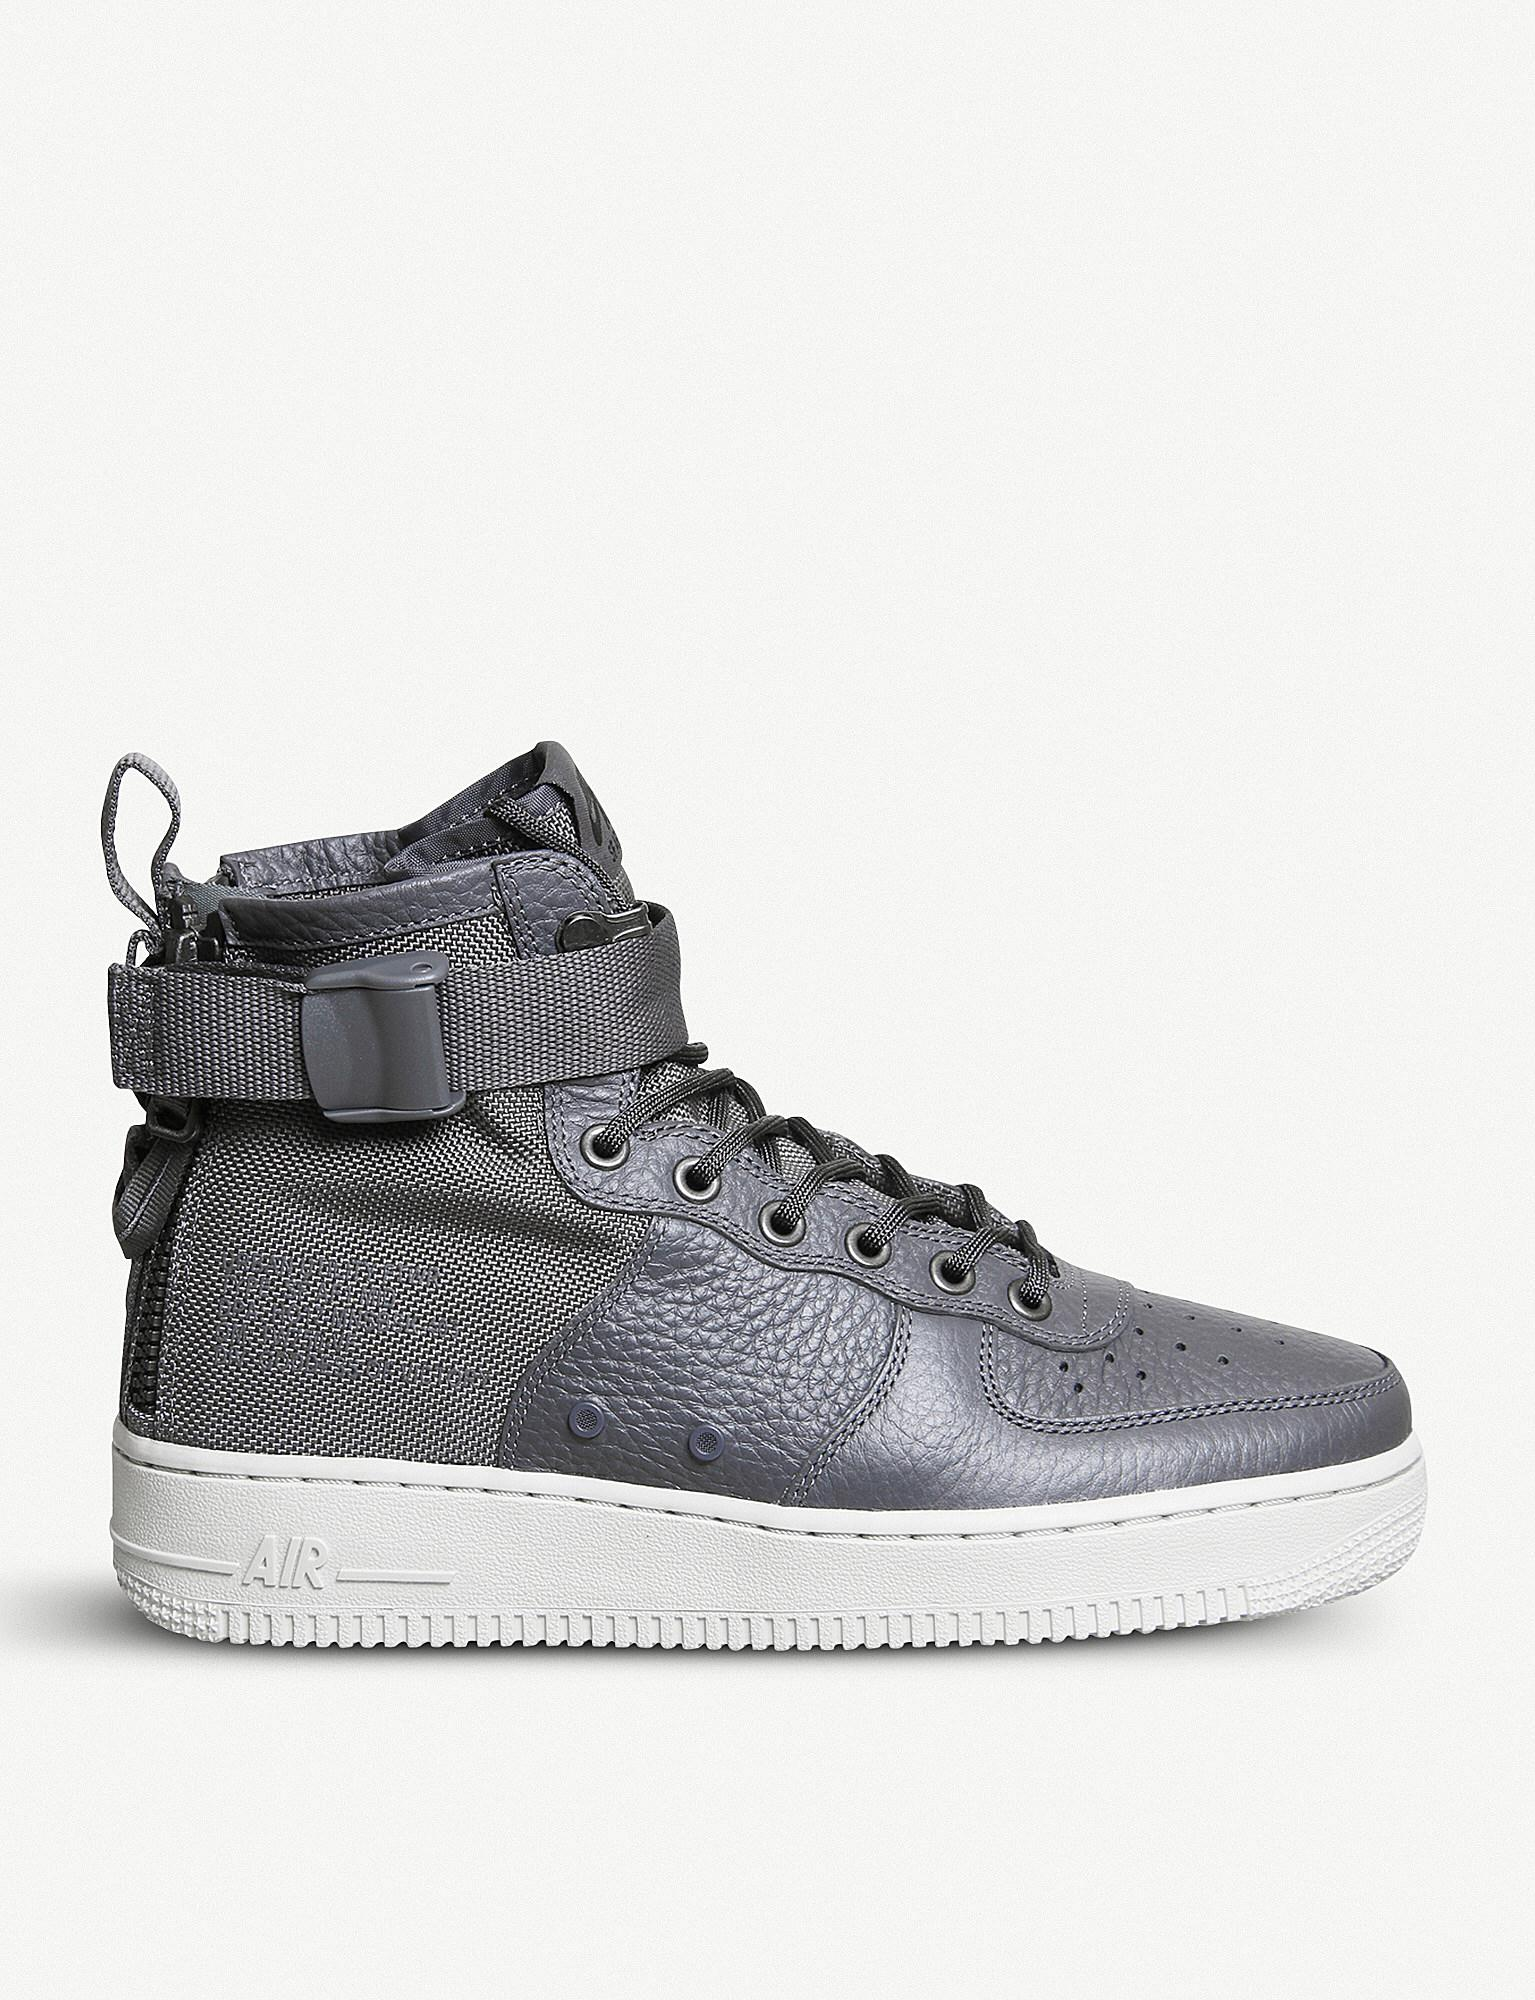 9b8ff2e0a6bae ... netherlands lyst nike sf af 1 17 leathe and mesh mid top trainers in  gray for